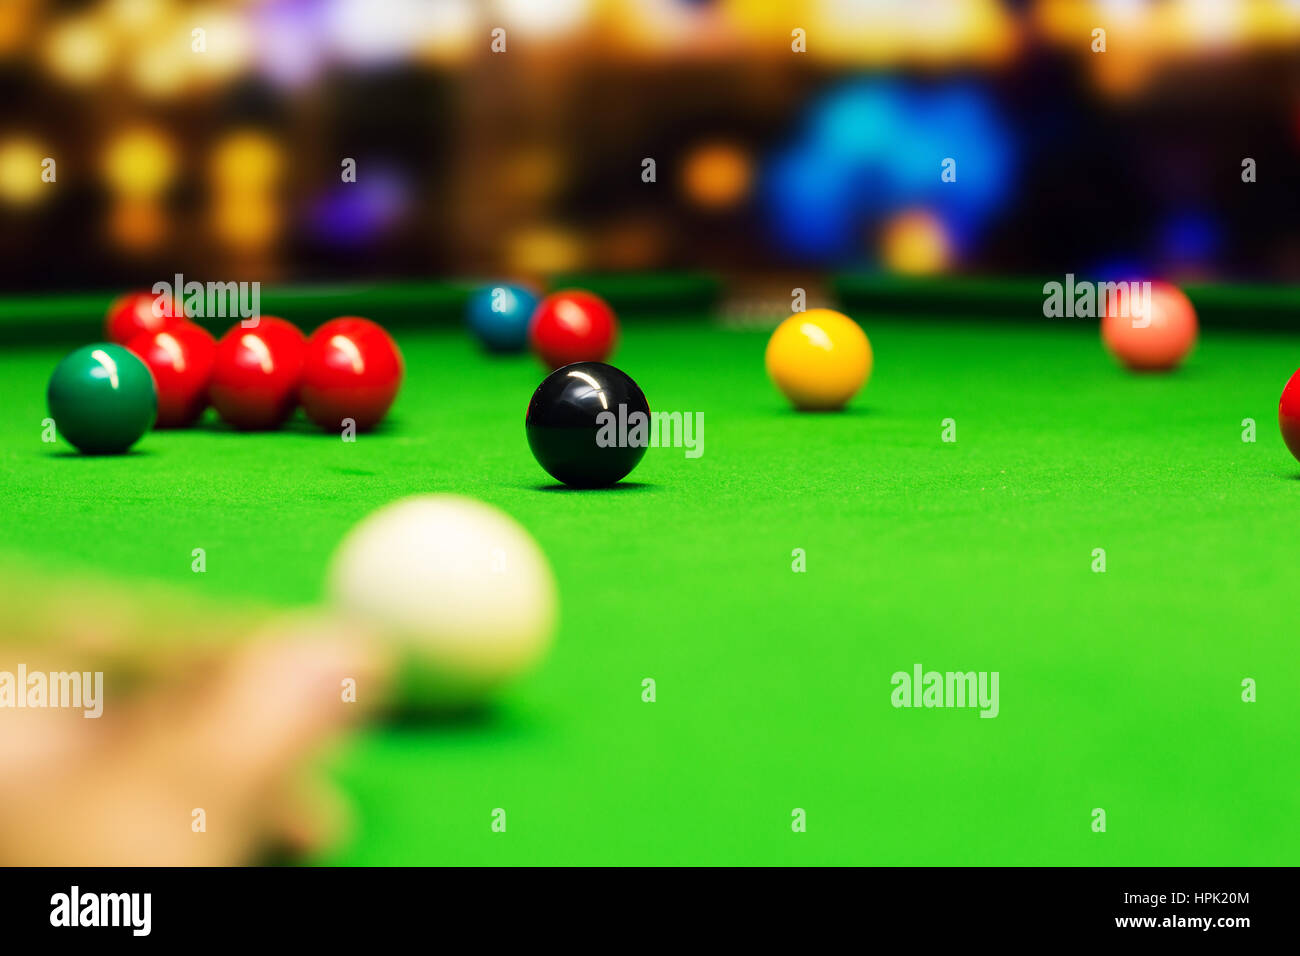 snooker - aim the cue ball. focus on black ball - Stock Image